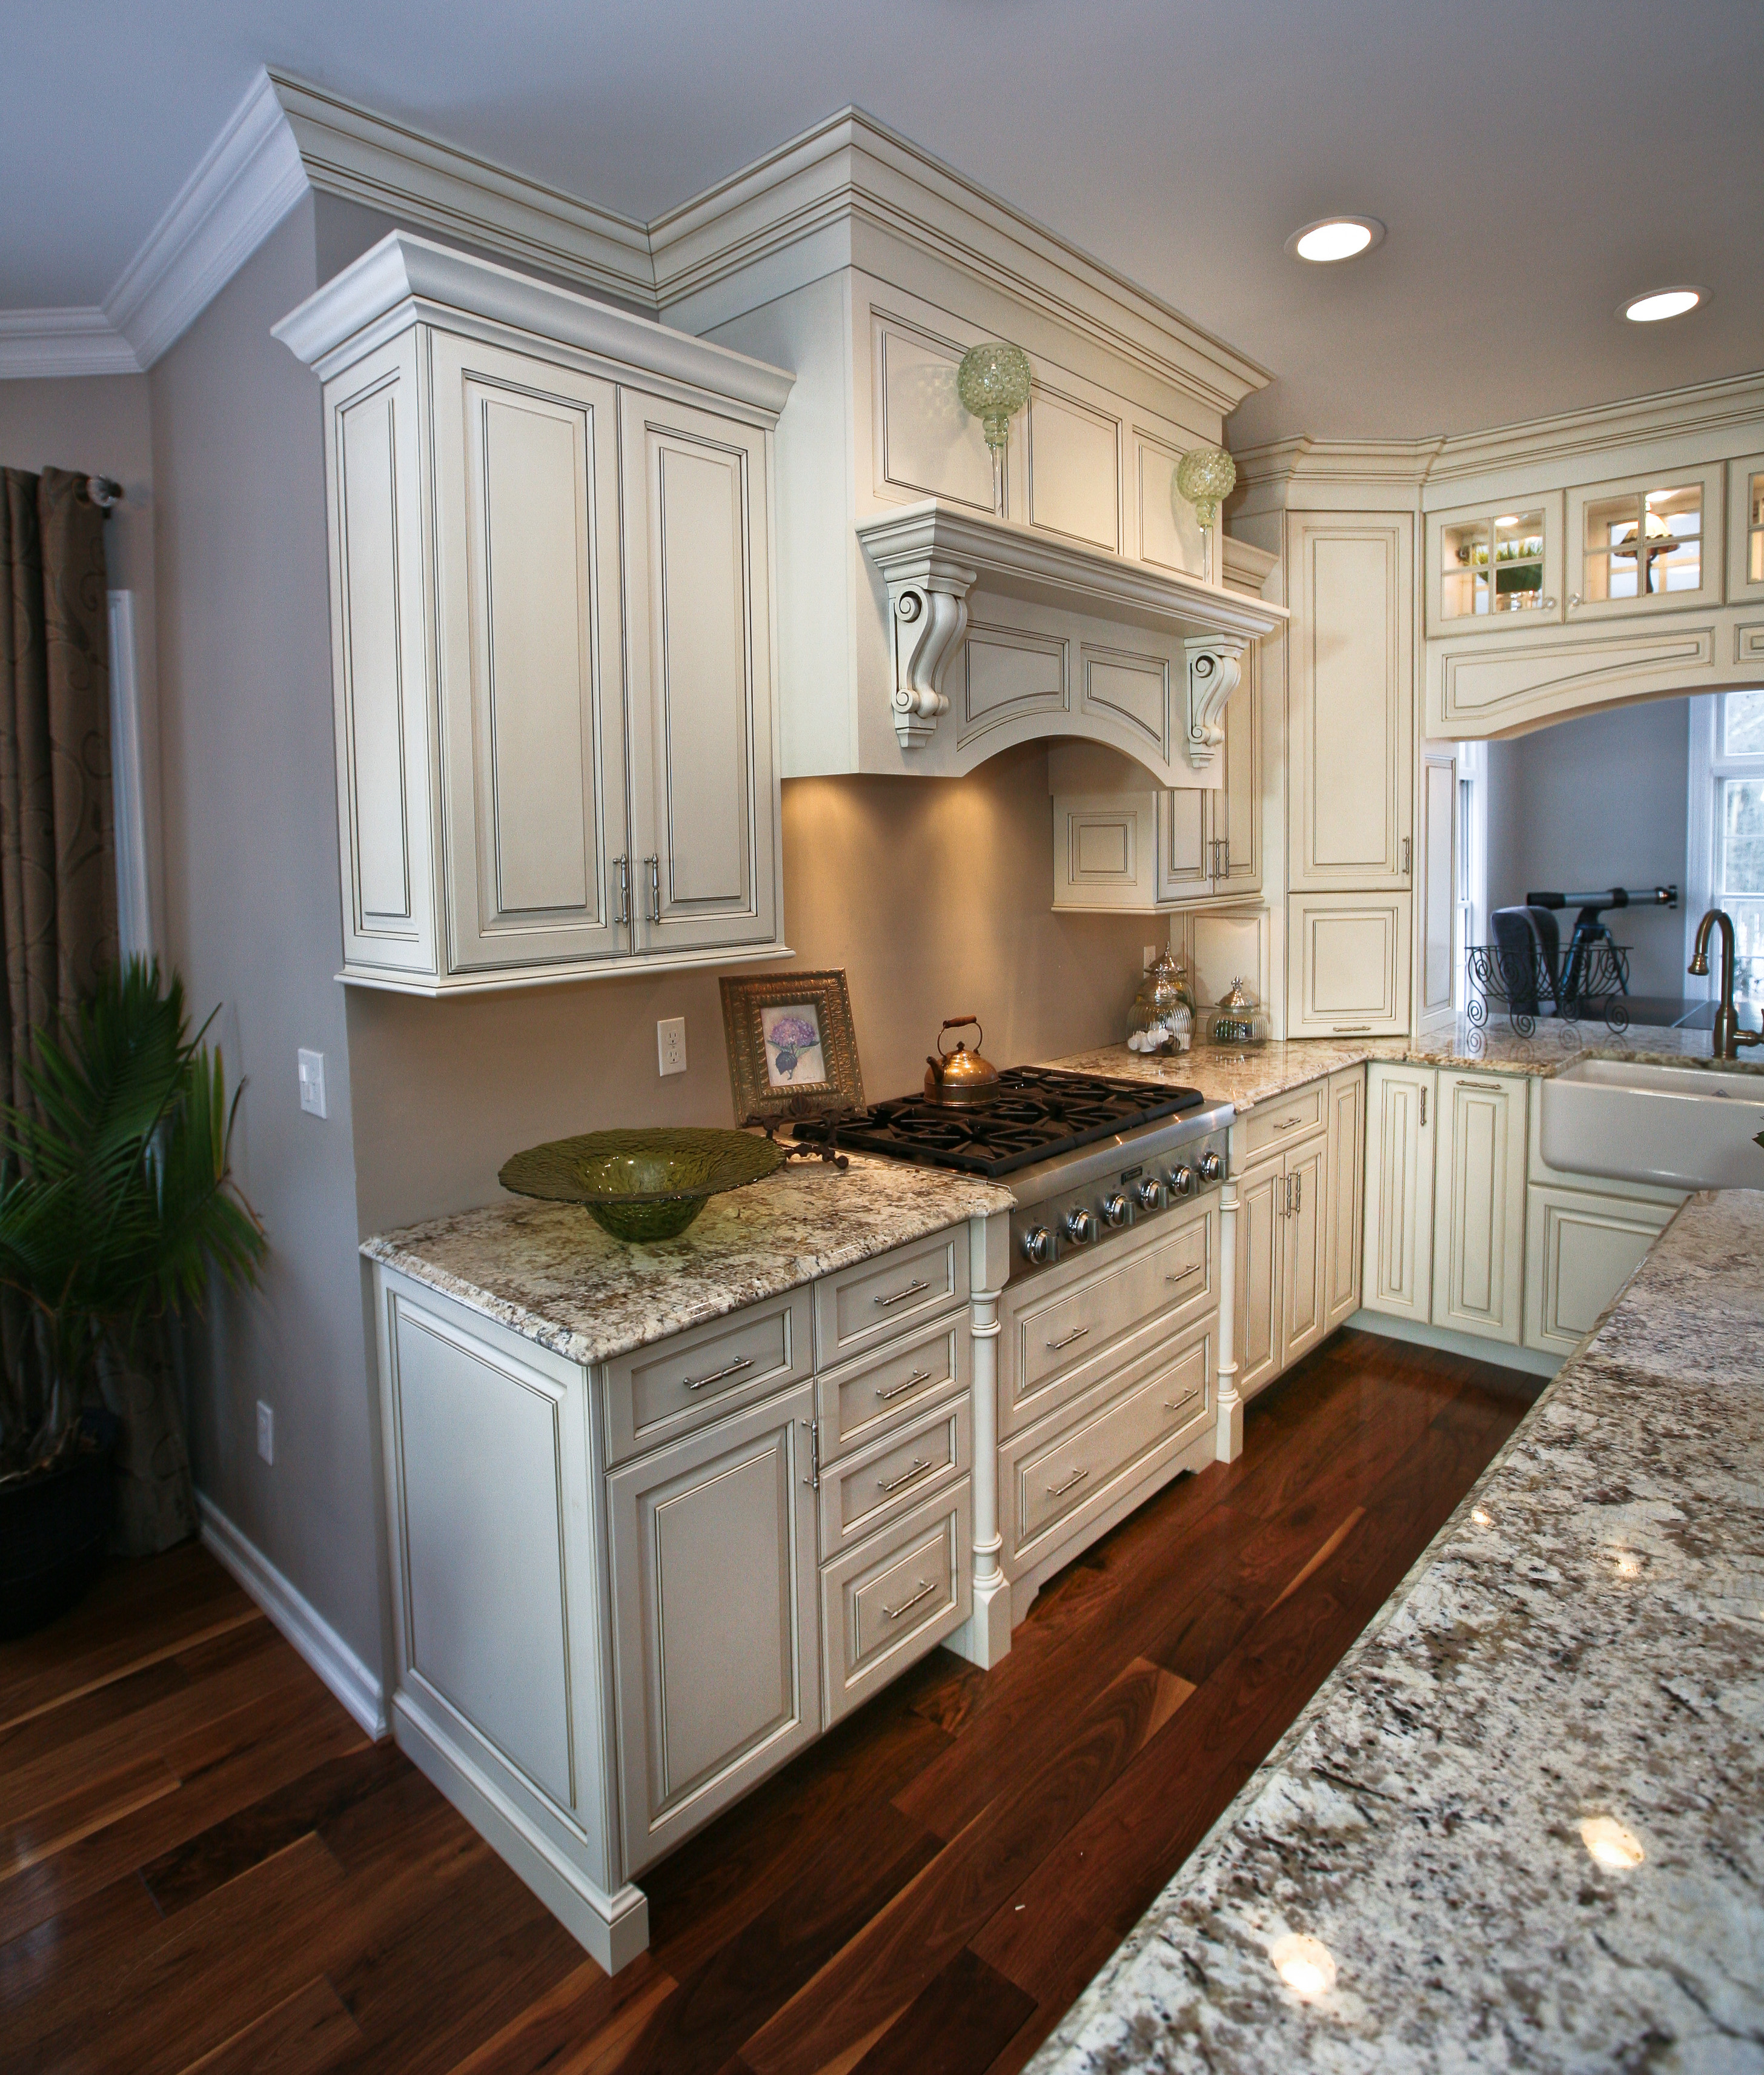 Kitchen Cabinet Company: Perfect Balance Kitchen Wall New Jersey By Design Line